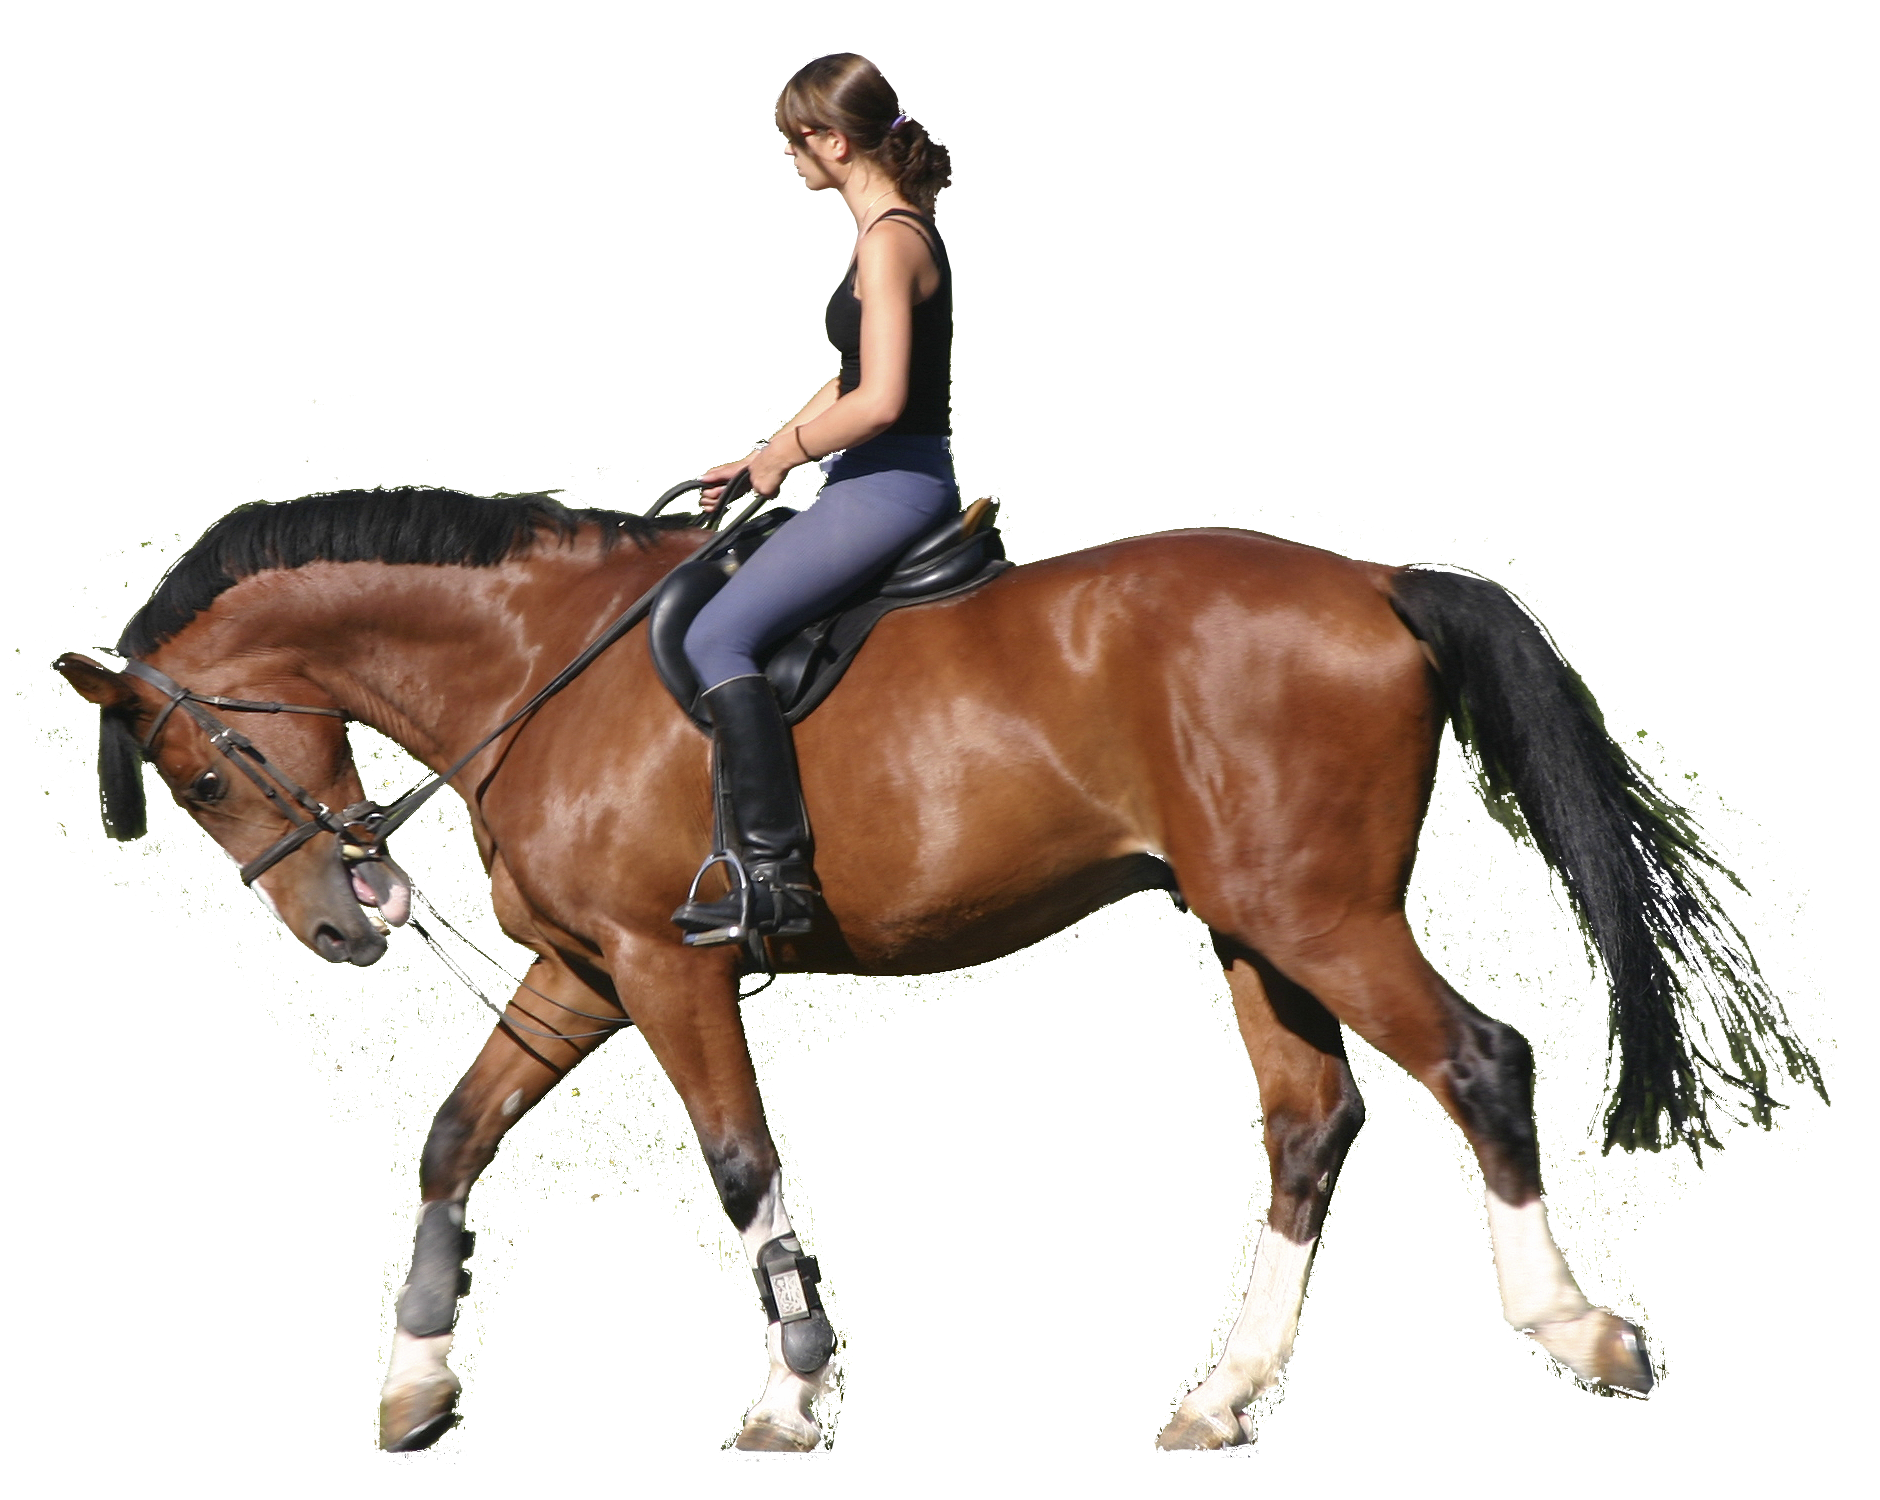 Horse Riding Wallpapers Photography Hq Horse Riding Pictures 4k Wallpapers 2019